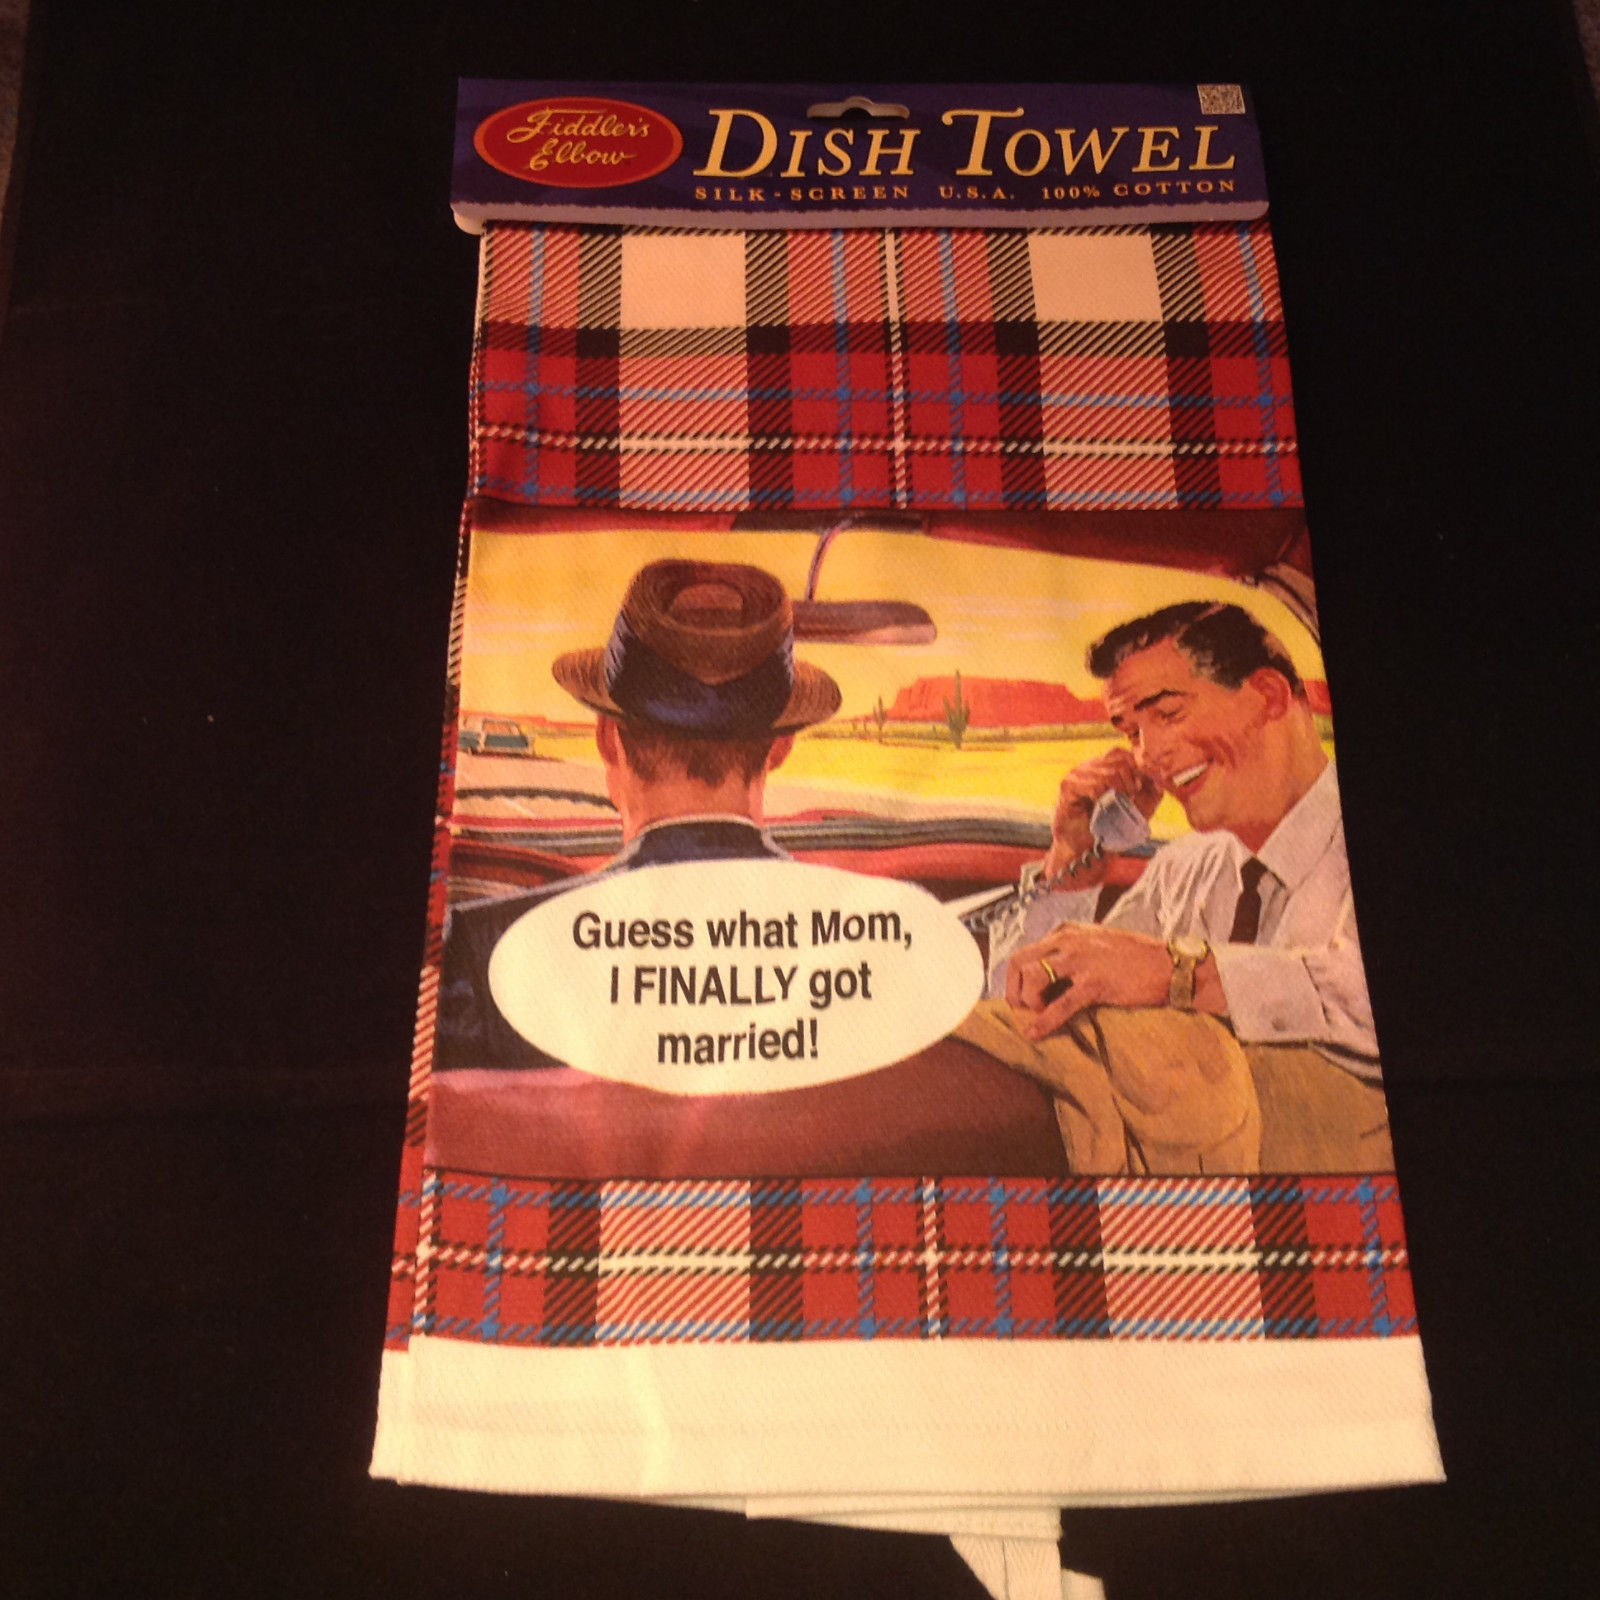 Guess What Mom I Finally Got Married Dish Towel by Fiddlers Elbow Lint Free